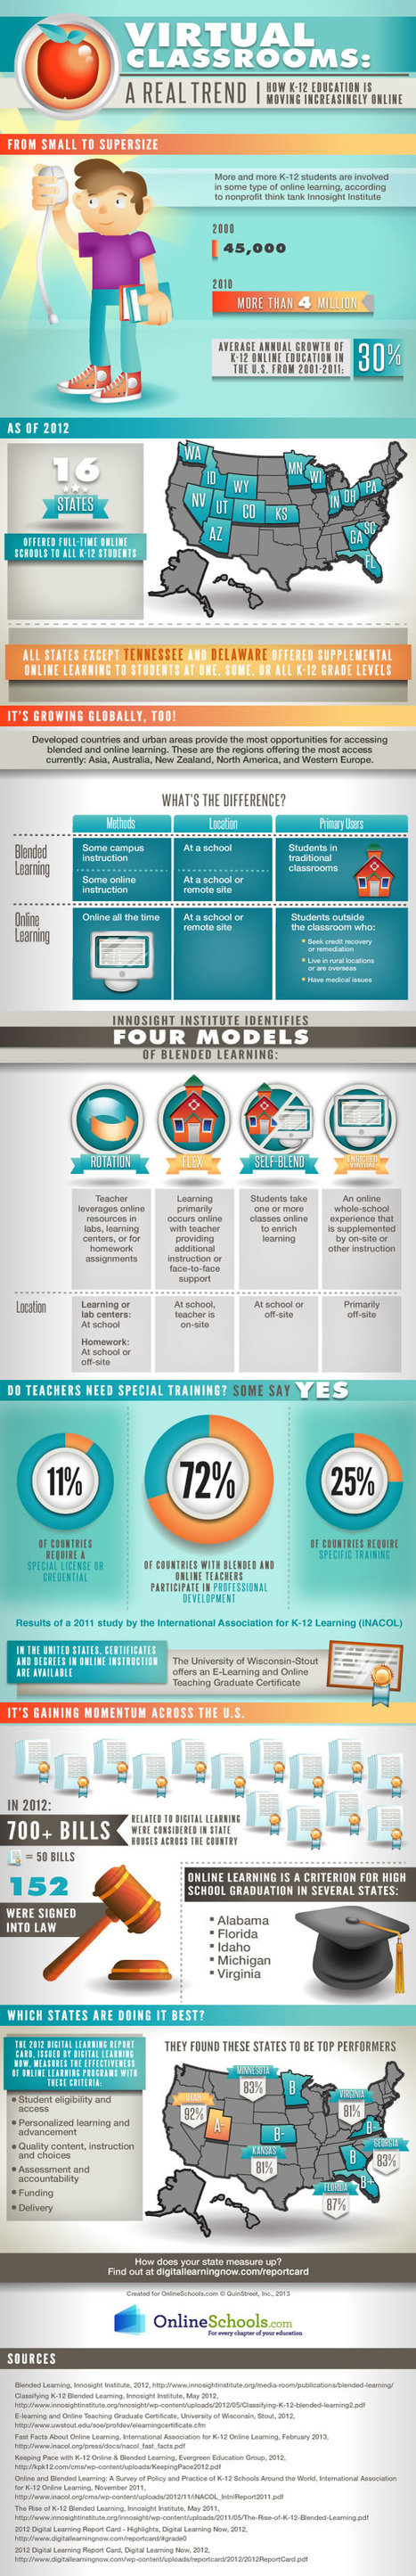 K-12 Distance Learning and Blended Learning: Trends on the Rise? | mobile learning BYOD | Scoop.it